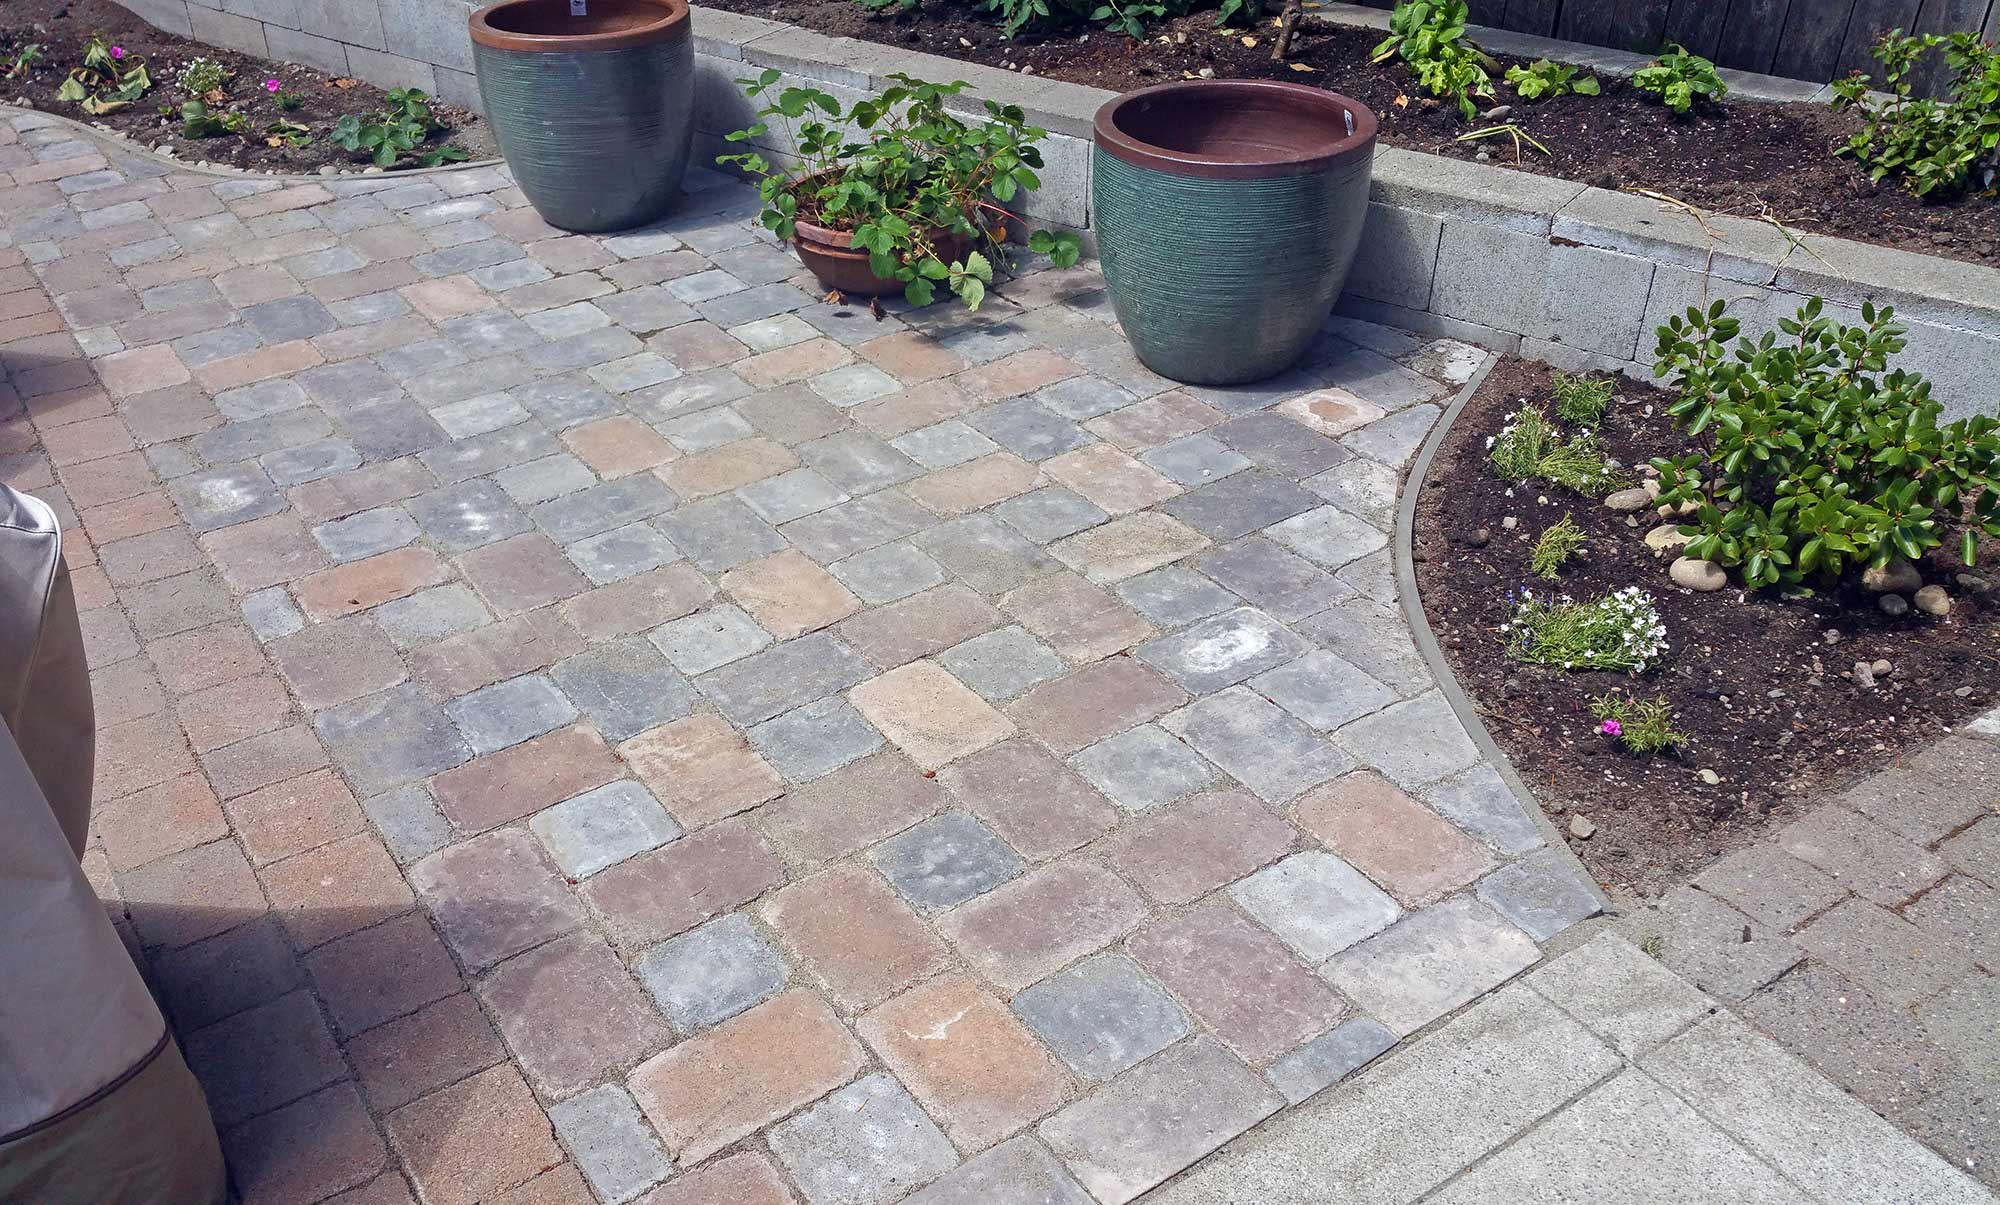 We Extended The Existing Paver Patio Integrating Landscape Bedeeting A Concrete Slab